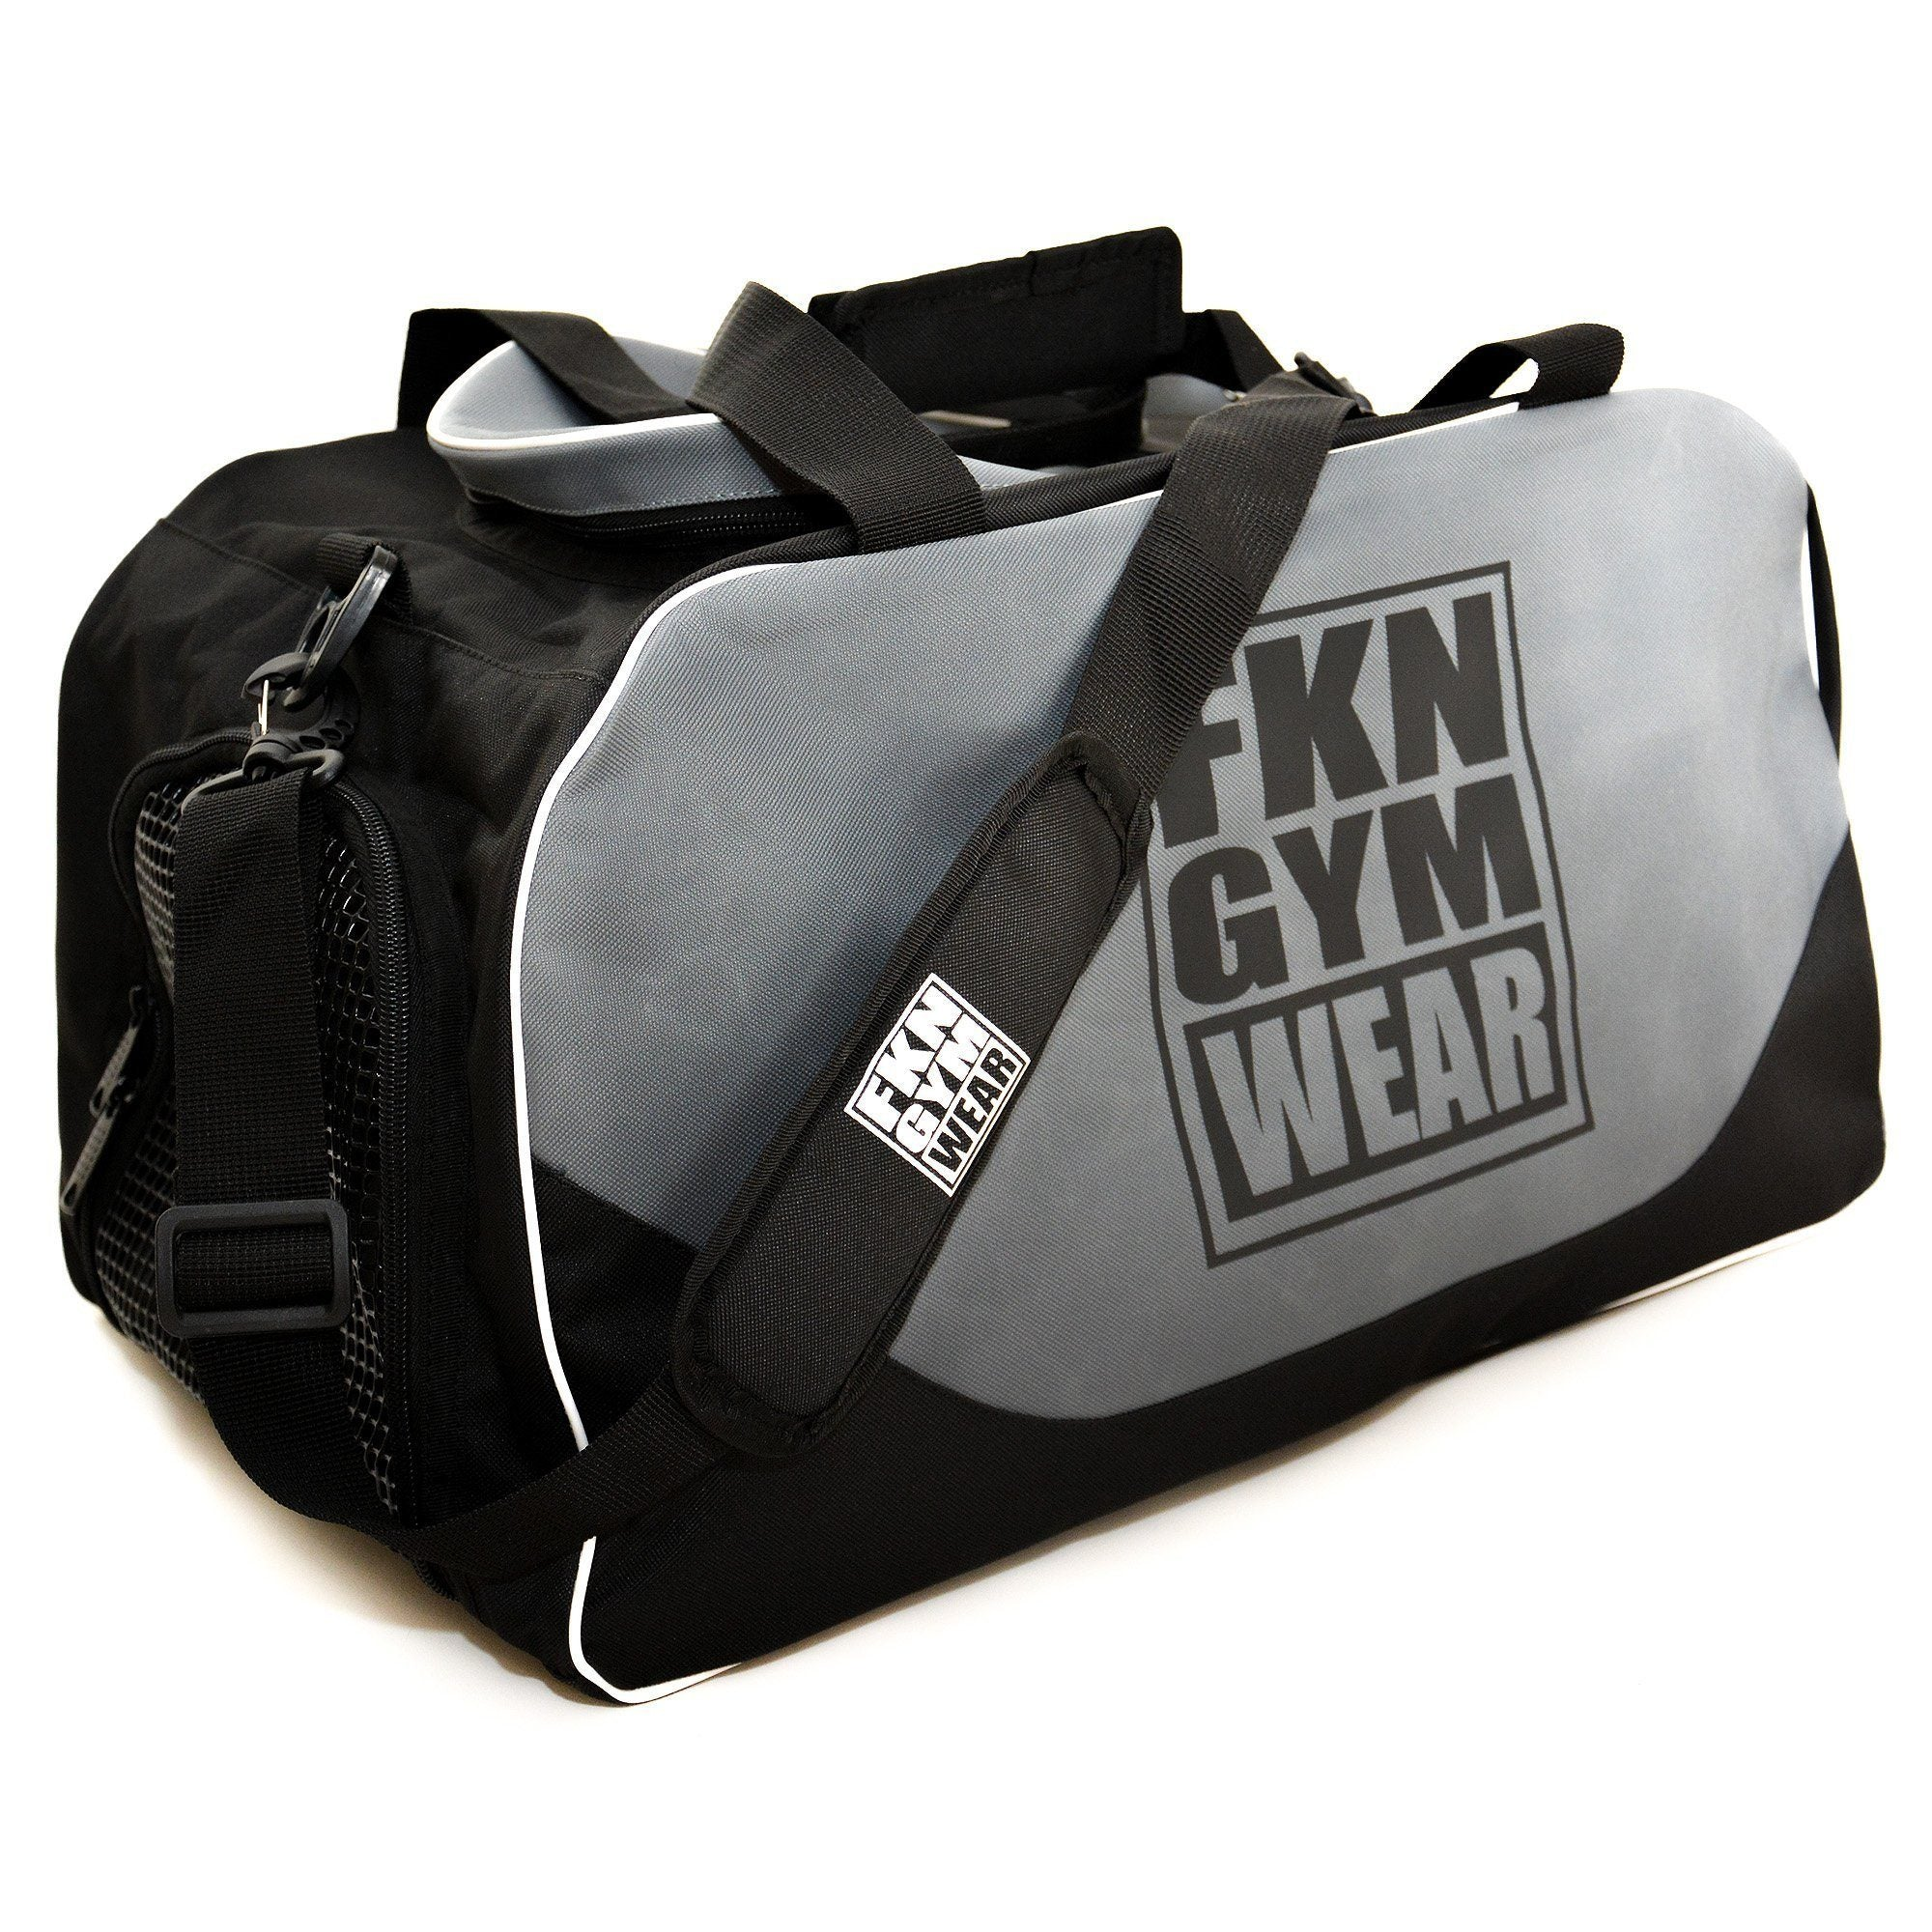 FKN Gym Wear Gym Bag - Grey